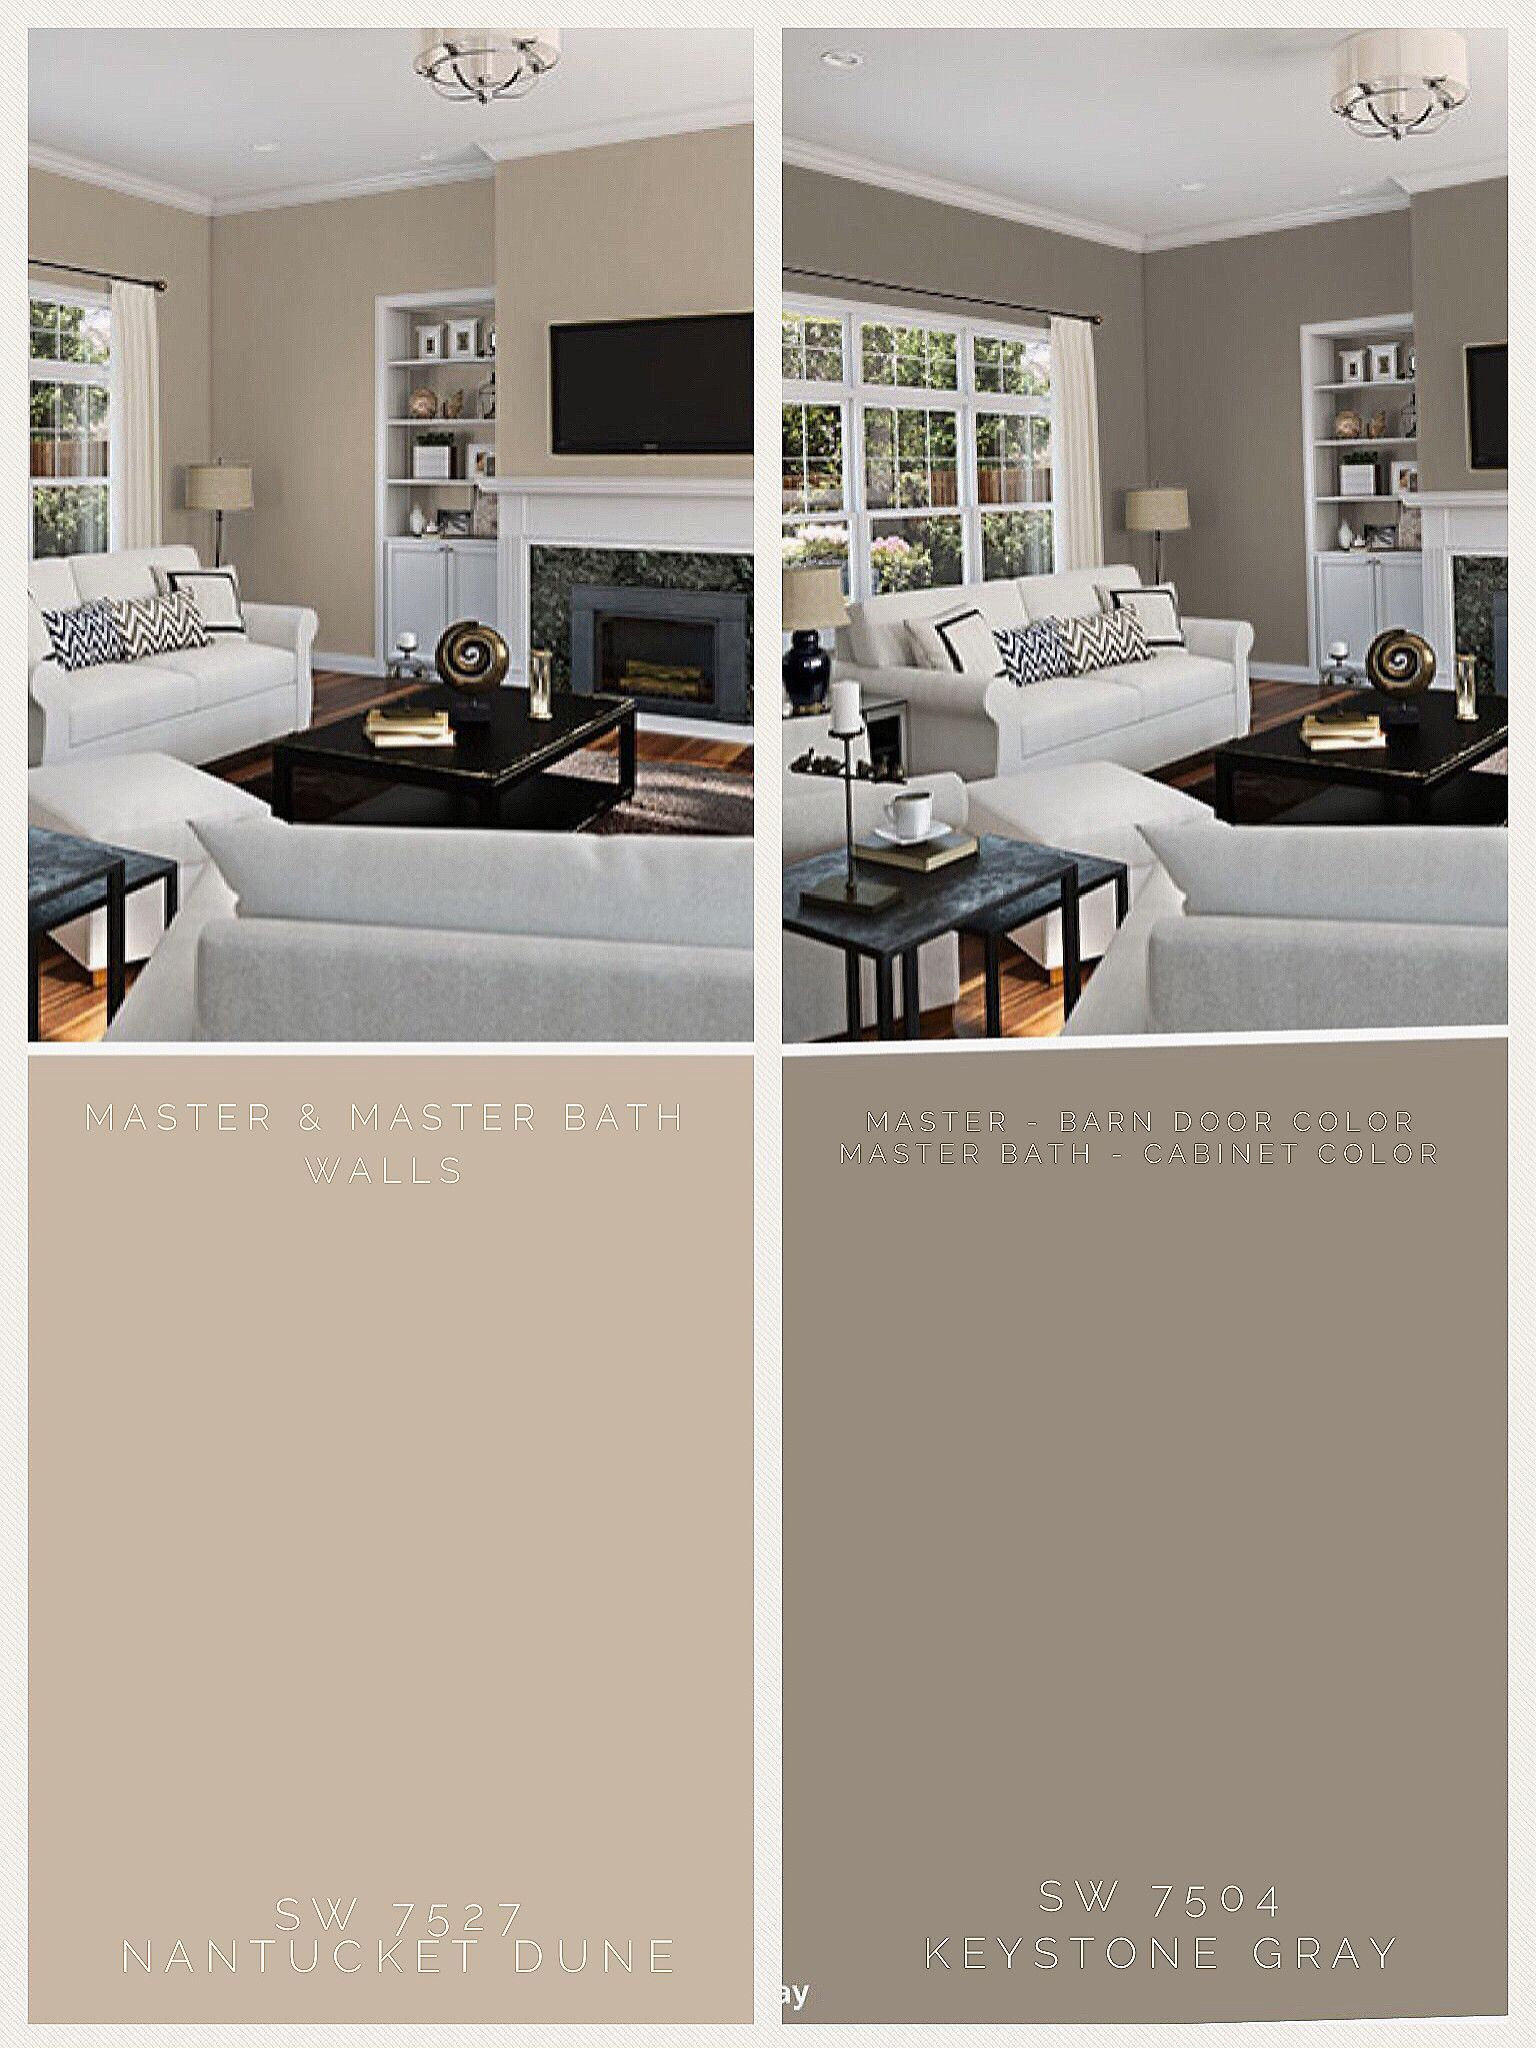 Top 6 Interior Color Trends 2020 The Most Popular Paint Colors